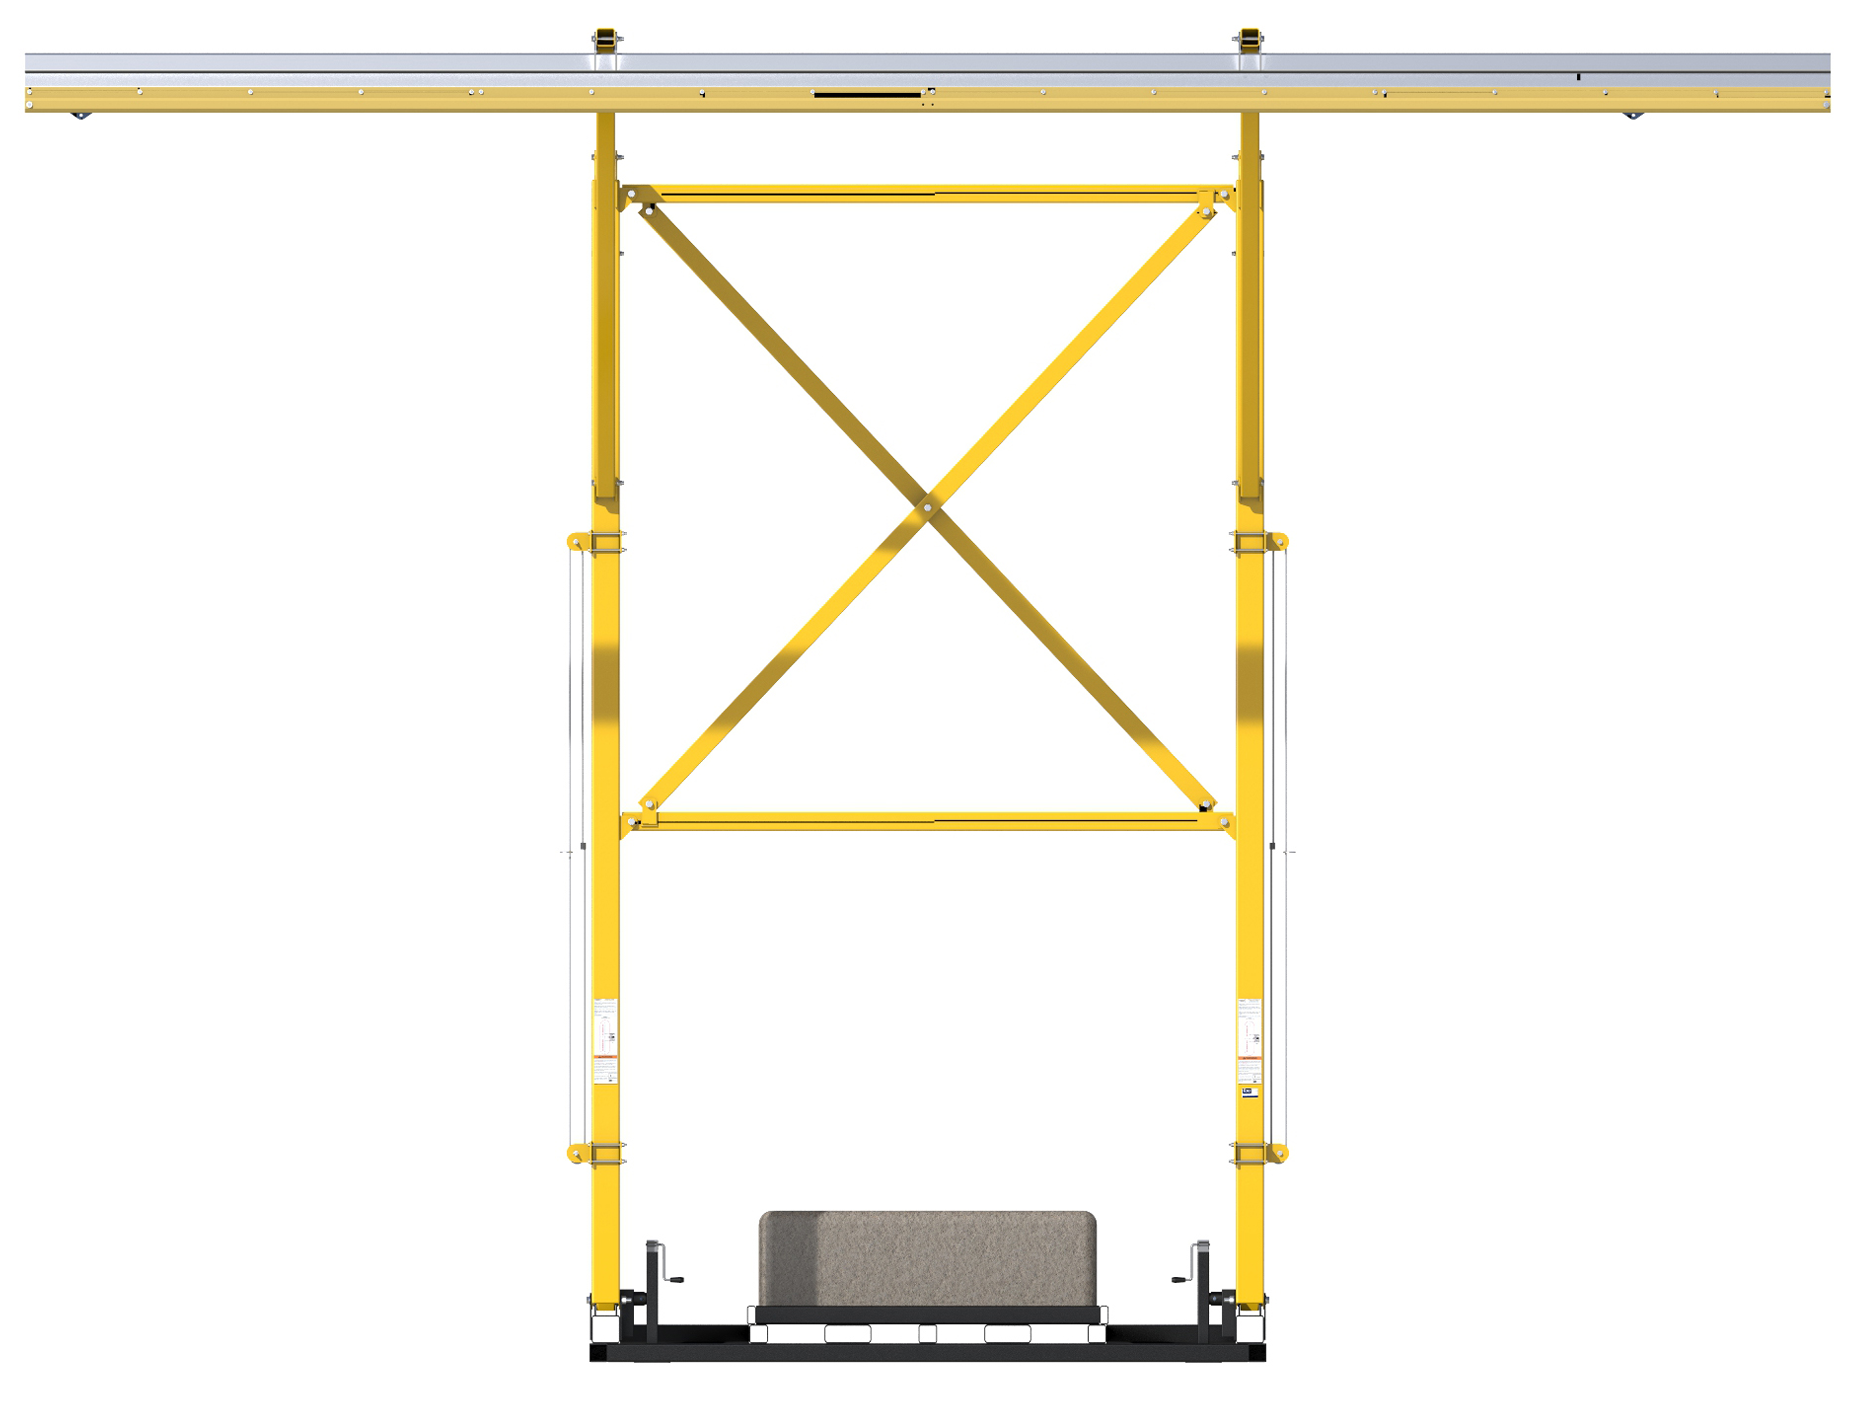 FlexiGuard Counterweighted Overhead 42 ft. Rail Fall Arrest System, 22 ft. Ht., Counterweights Included, Front View